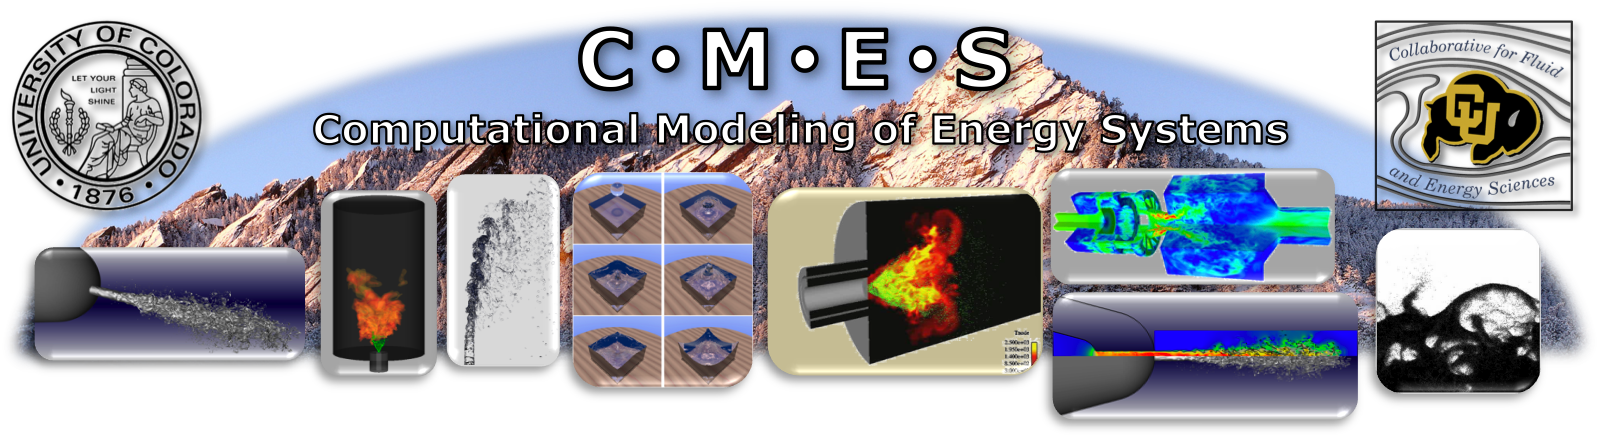 Computational Modeling of Energy Systems